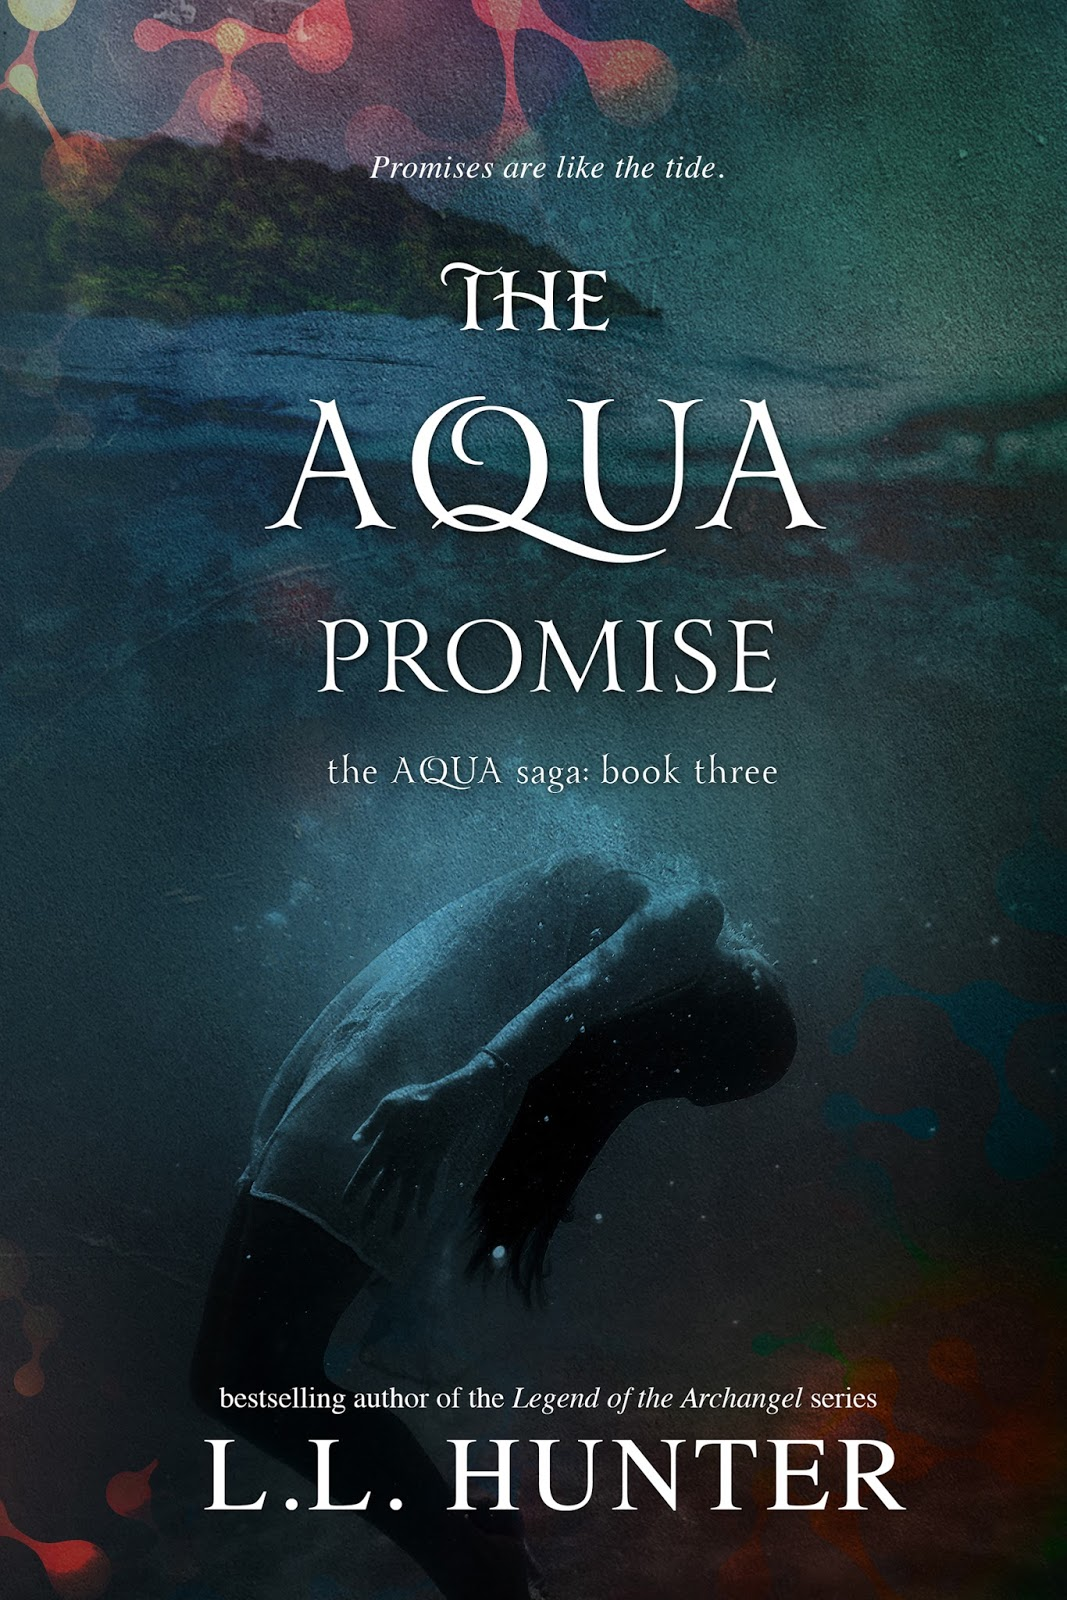 Bookworm for Kids: Happy Book B-day, The Aqua Promise by L L  Hunter!